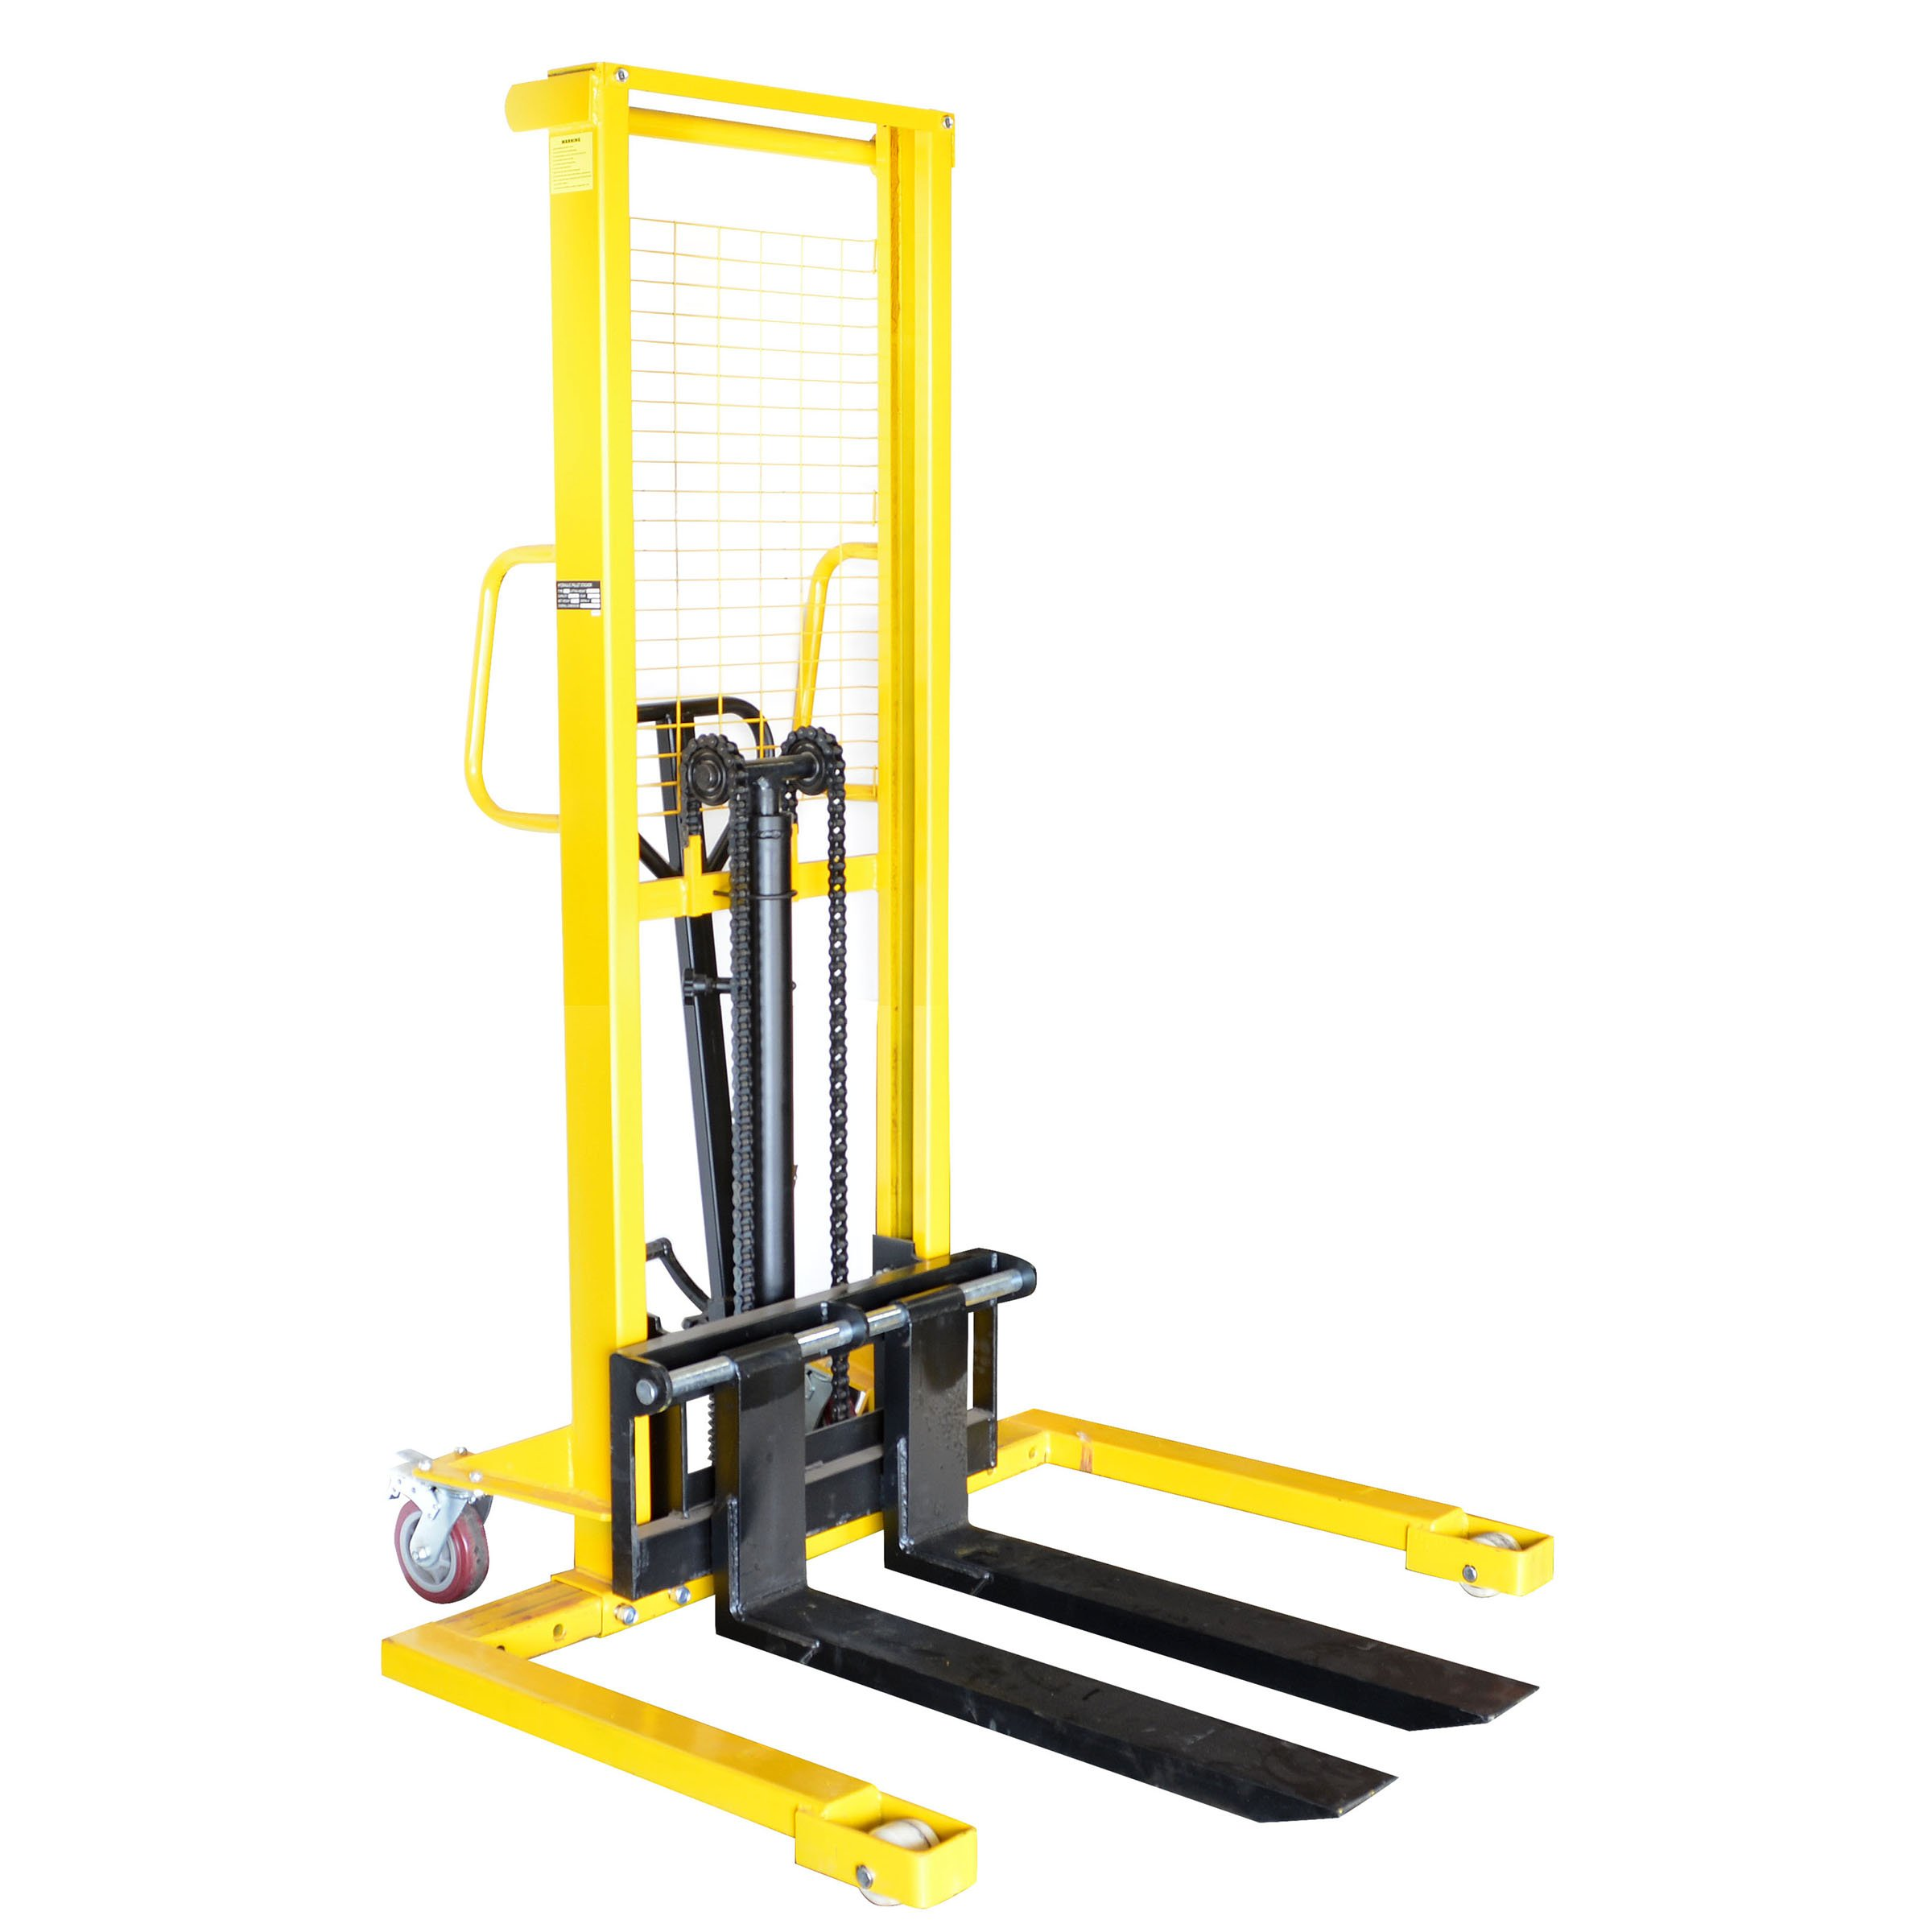 Pro-Series 700398 Manual Pallet Stacker, 2,200-Pound Capacity by Pro-series (Image #1)